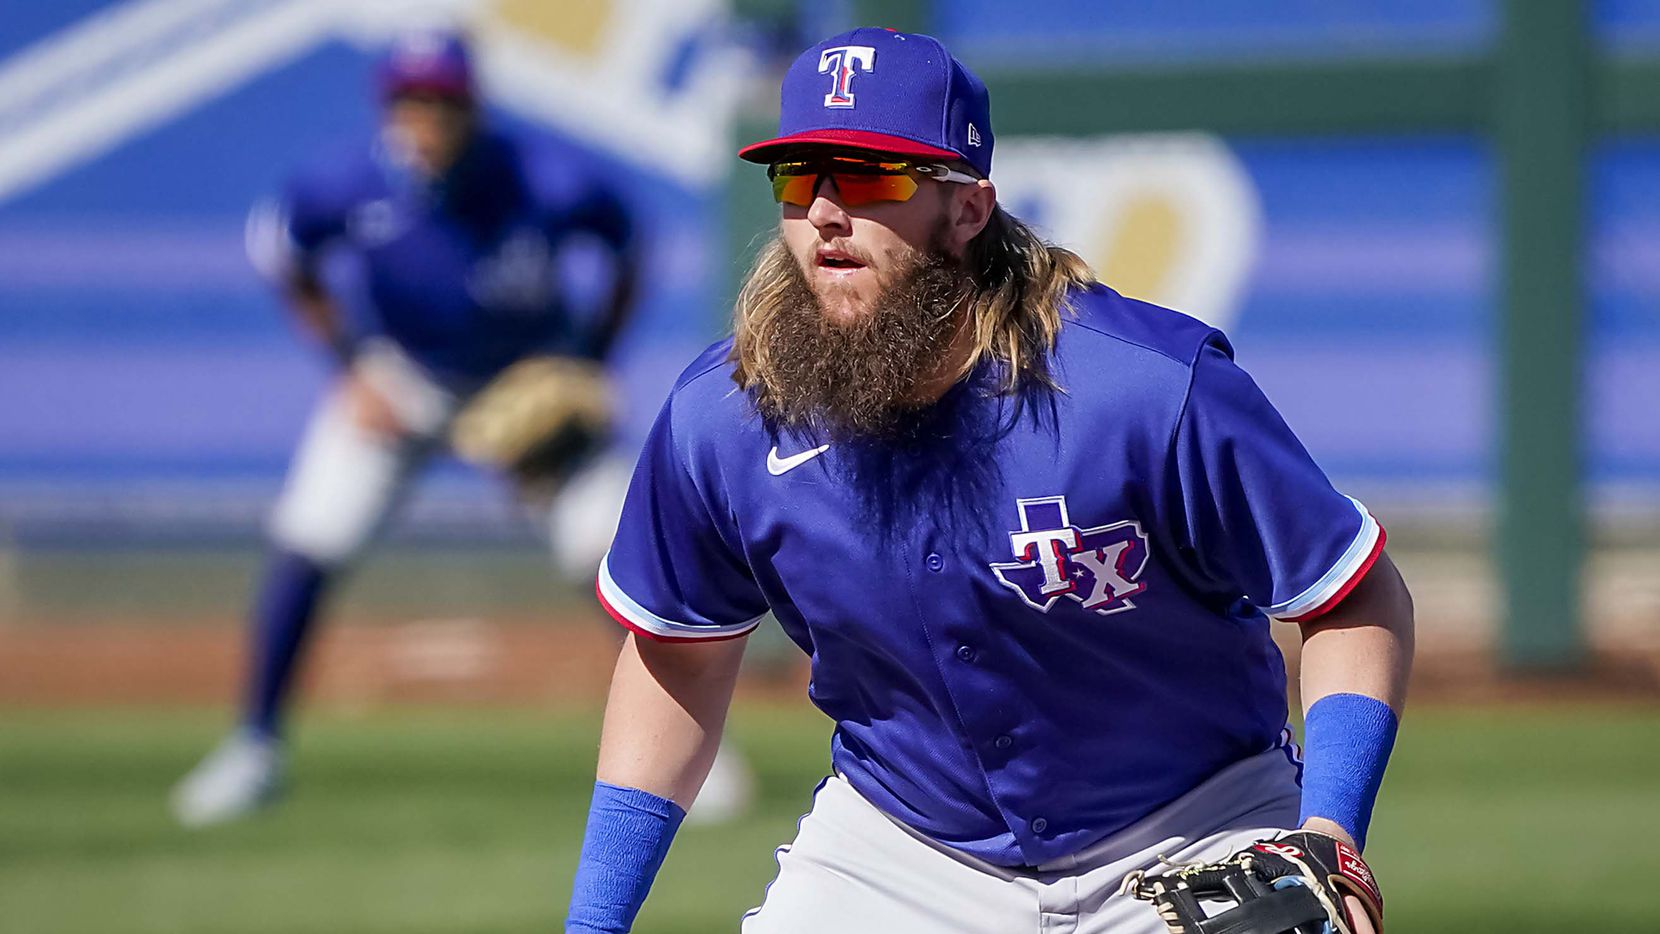 Rangers prospect Davis Wendzel fields at shortstop during the fifth inning of a spring training game against the Royals at Surprise Stadium on Sunday, Feb. 28, 2021, in Surprise, Ariz.